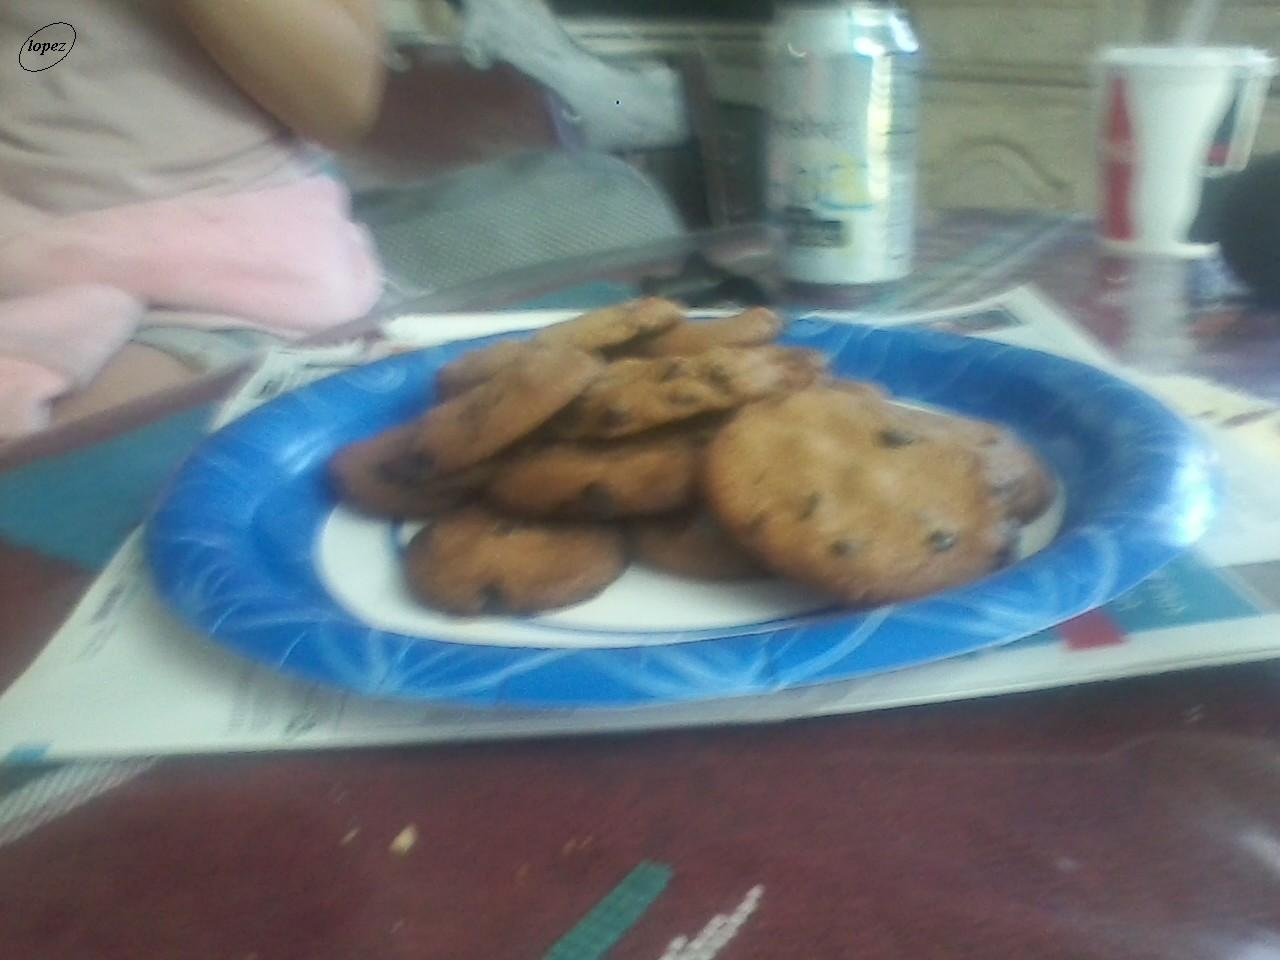 Chocolate Chip Cookies at home 1 by Francisco Lopez